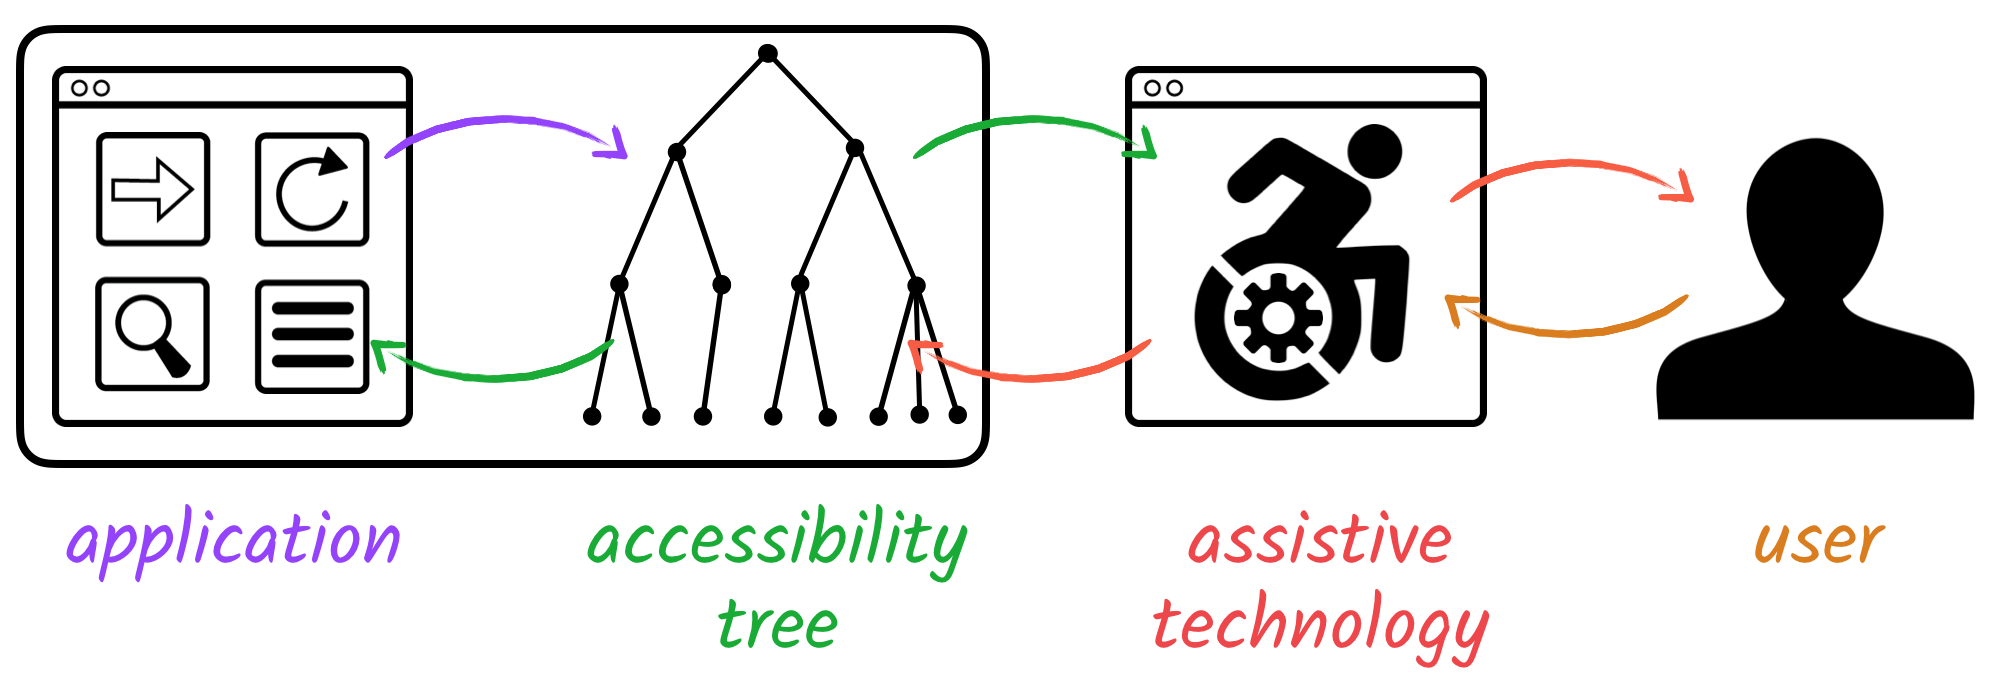 Flow from application UI to accessibility tree to assistive technology to user